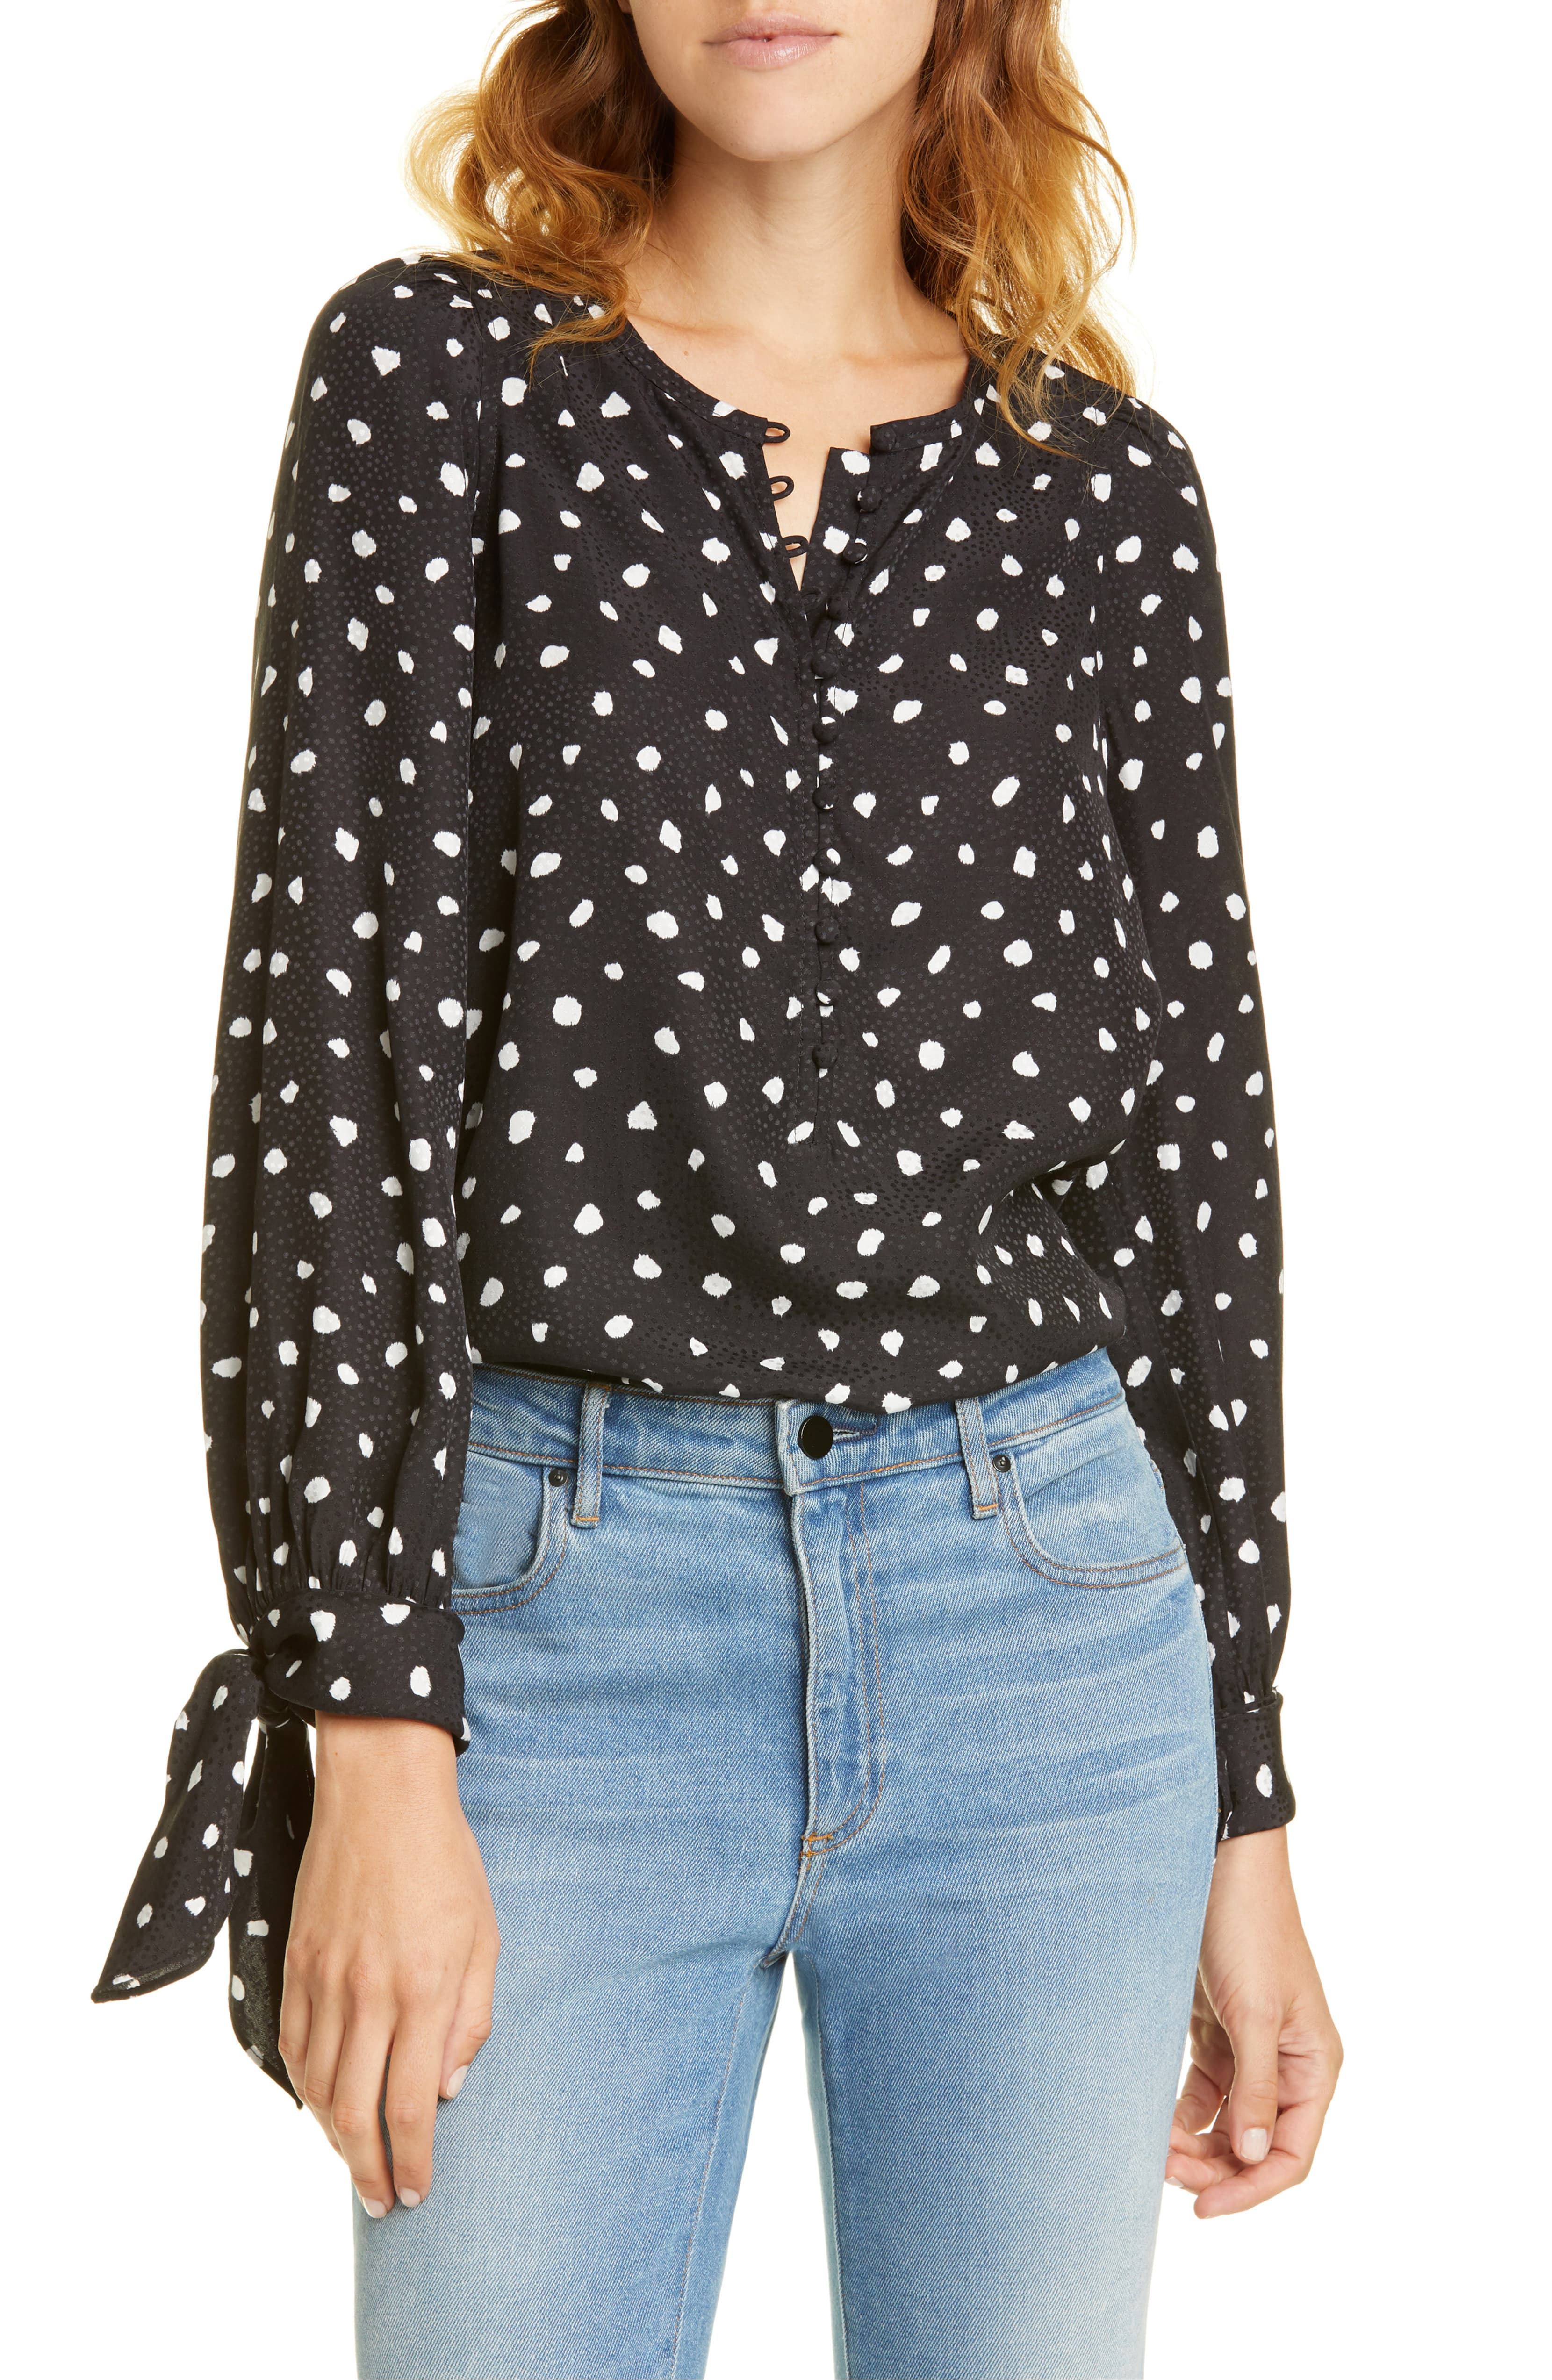 Black and White Spots Silk Blouse